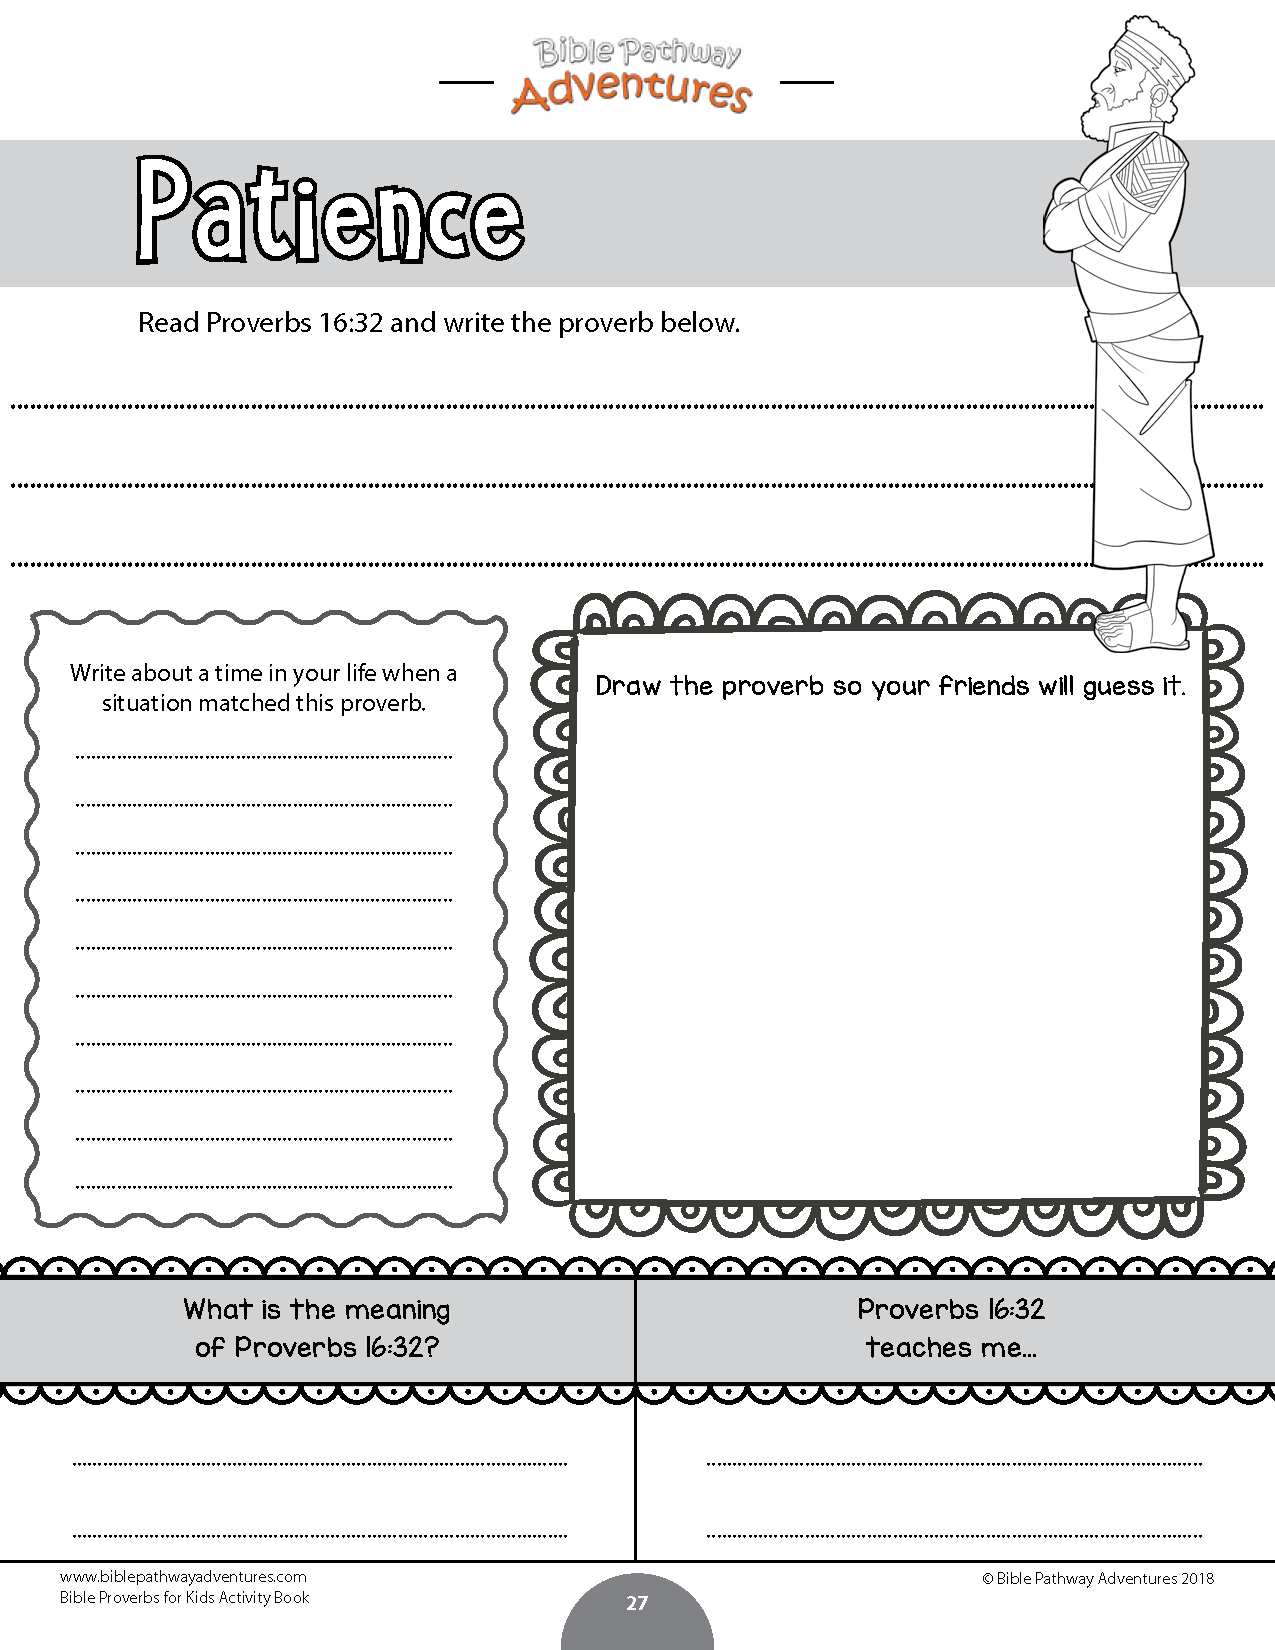 - Bible Proverbs For Kids Coloring Activity Book Bible Activities